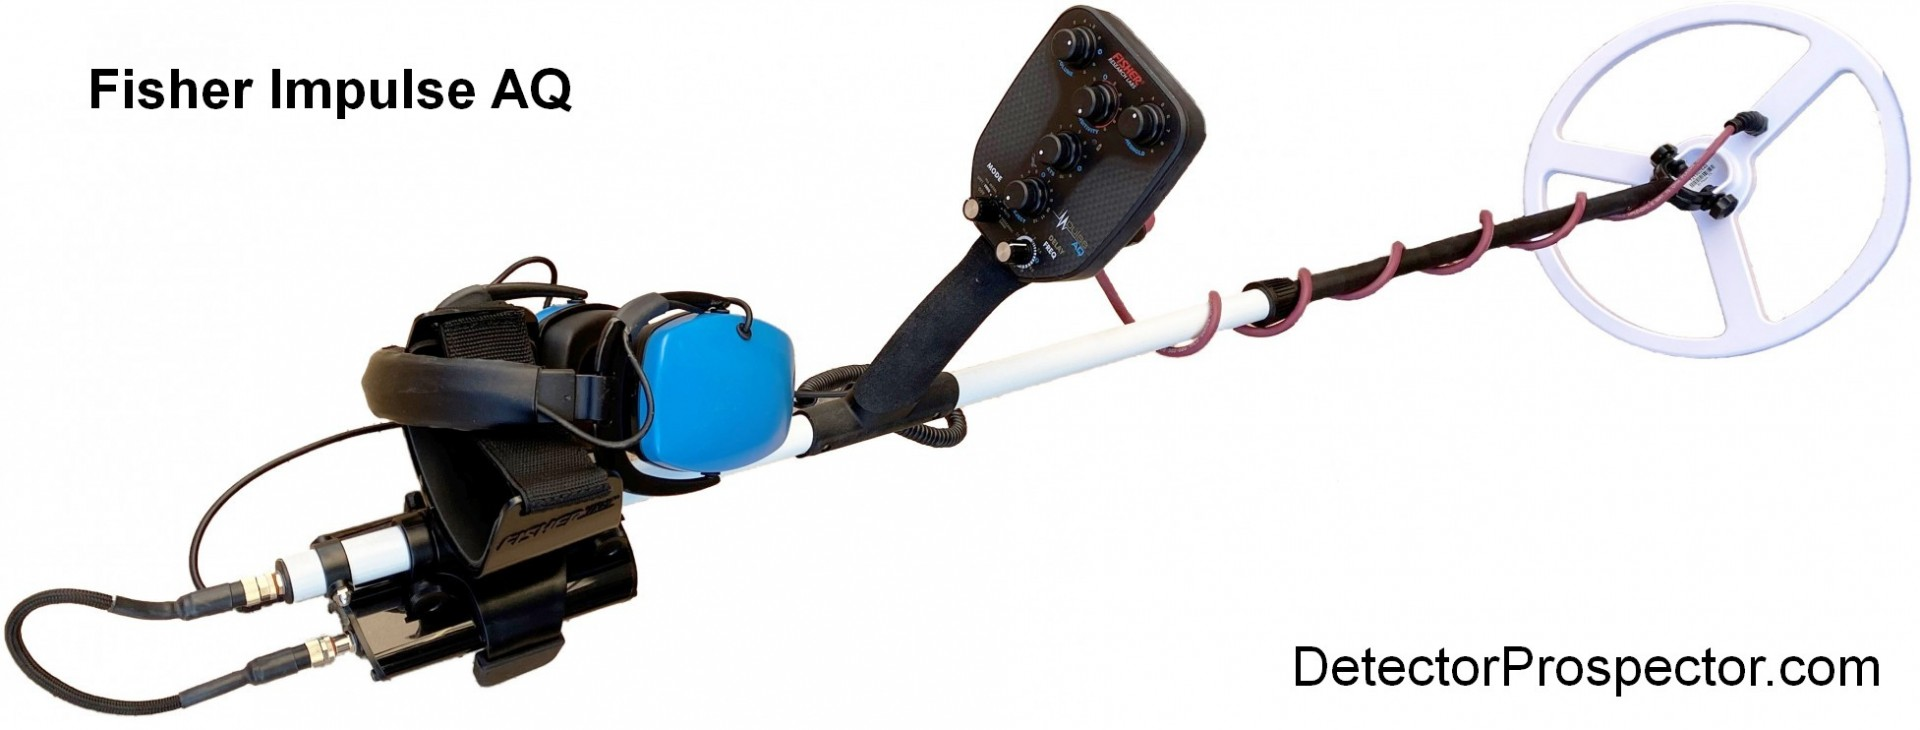 fisher-research-impulse-aq-metal-detector.jpg